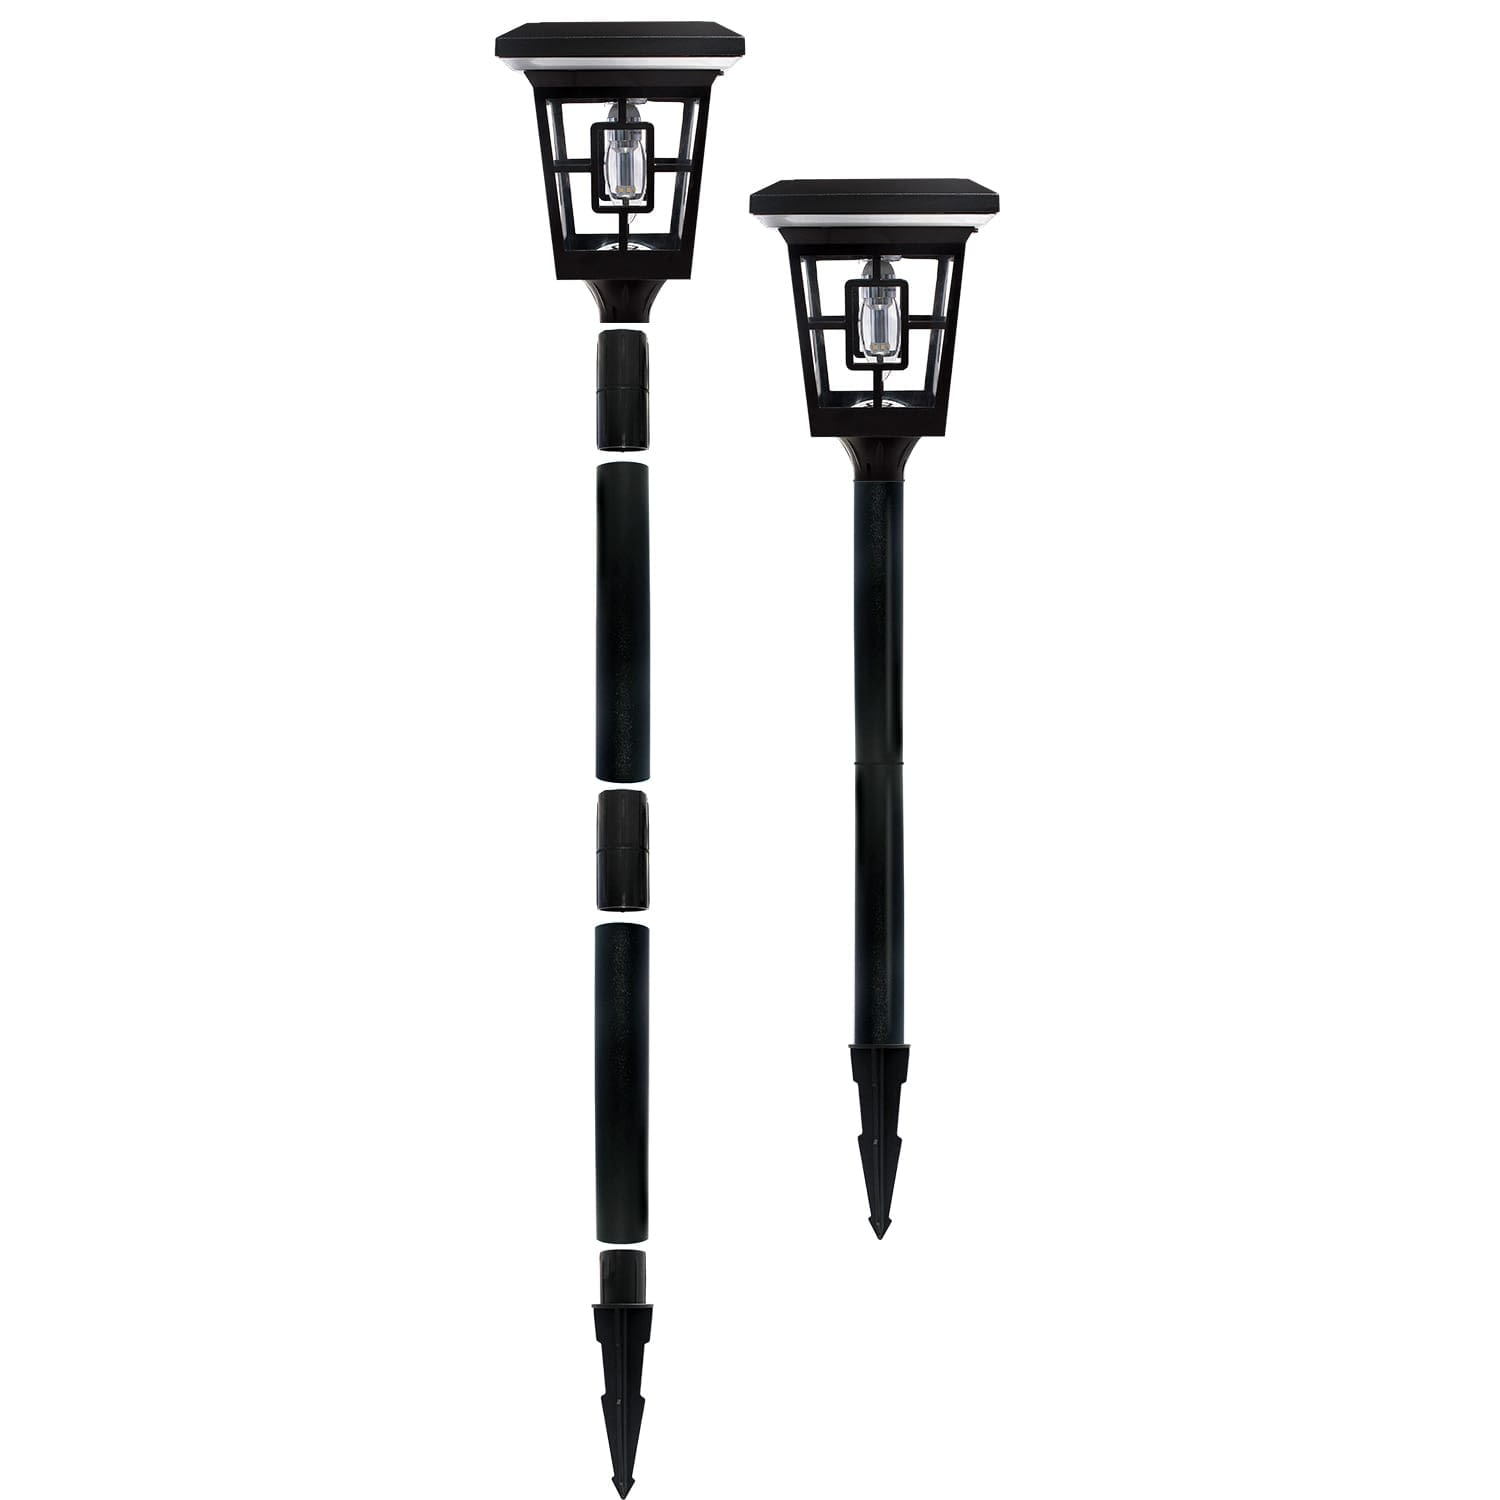 Gama Sonic Luna Solar Accent Light GS-57B by Gama Sonic